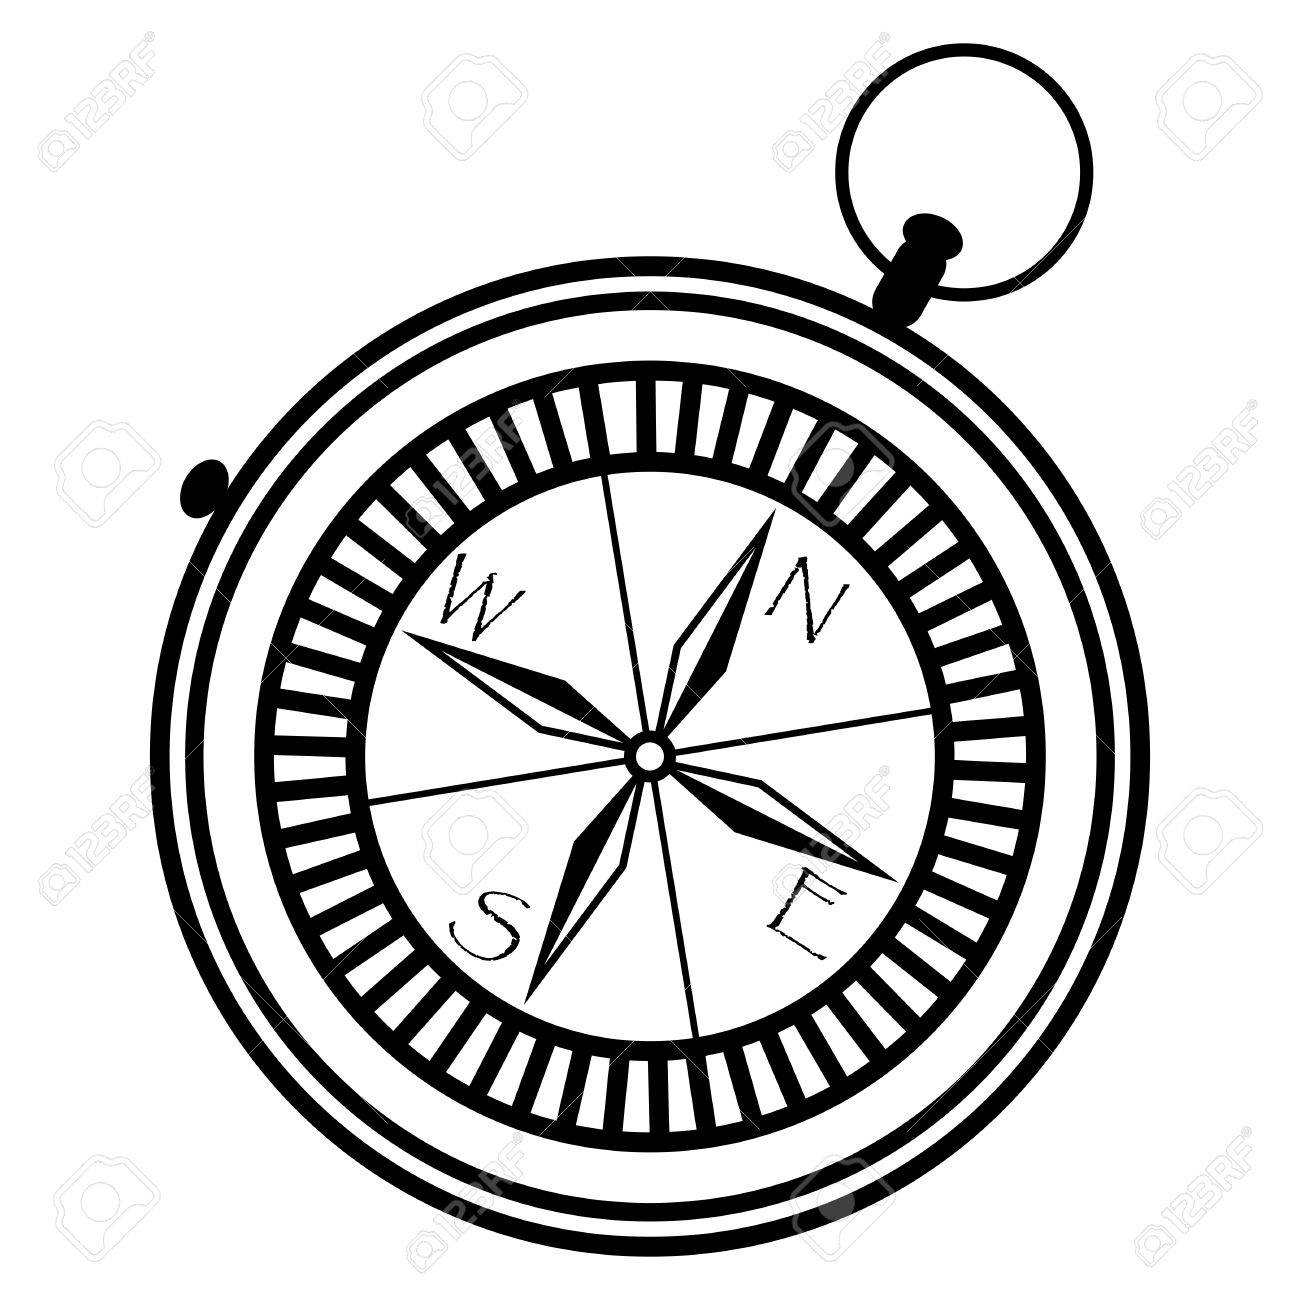 1300x1300 Simple Nautical Compass Showing Directions West, East, South